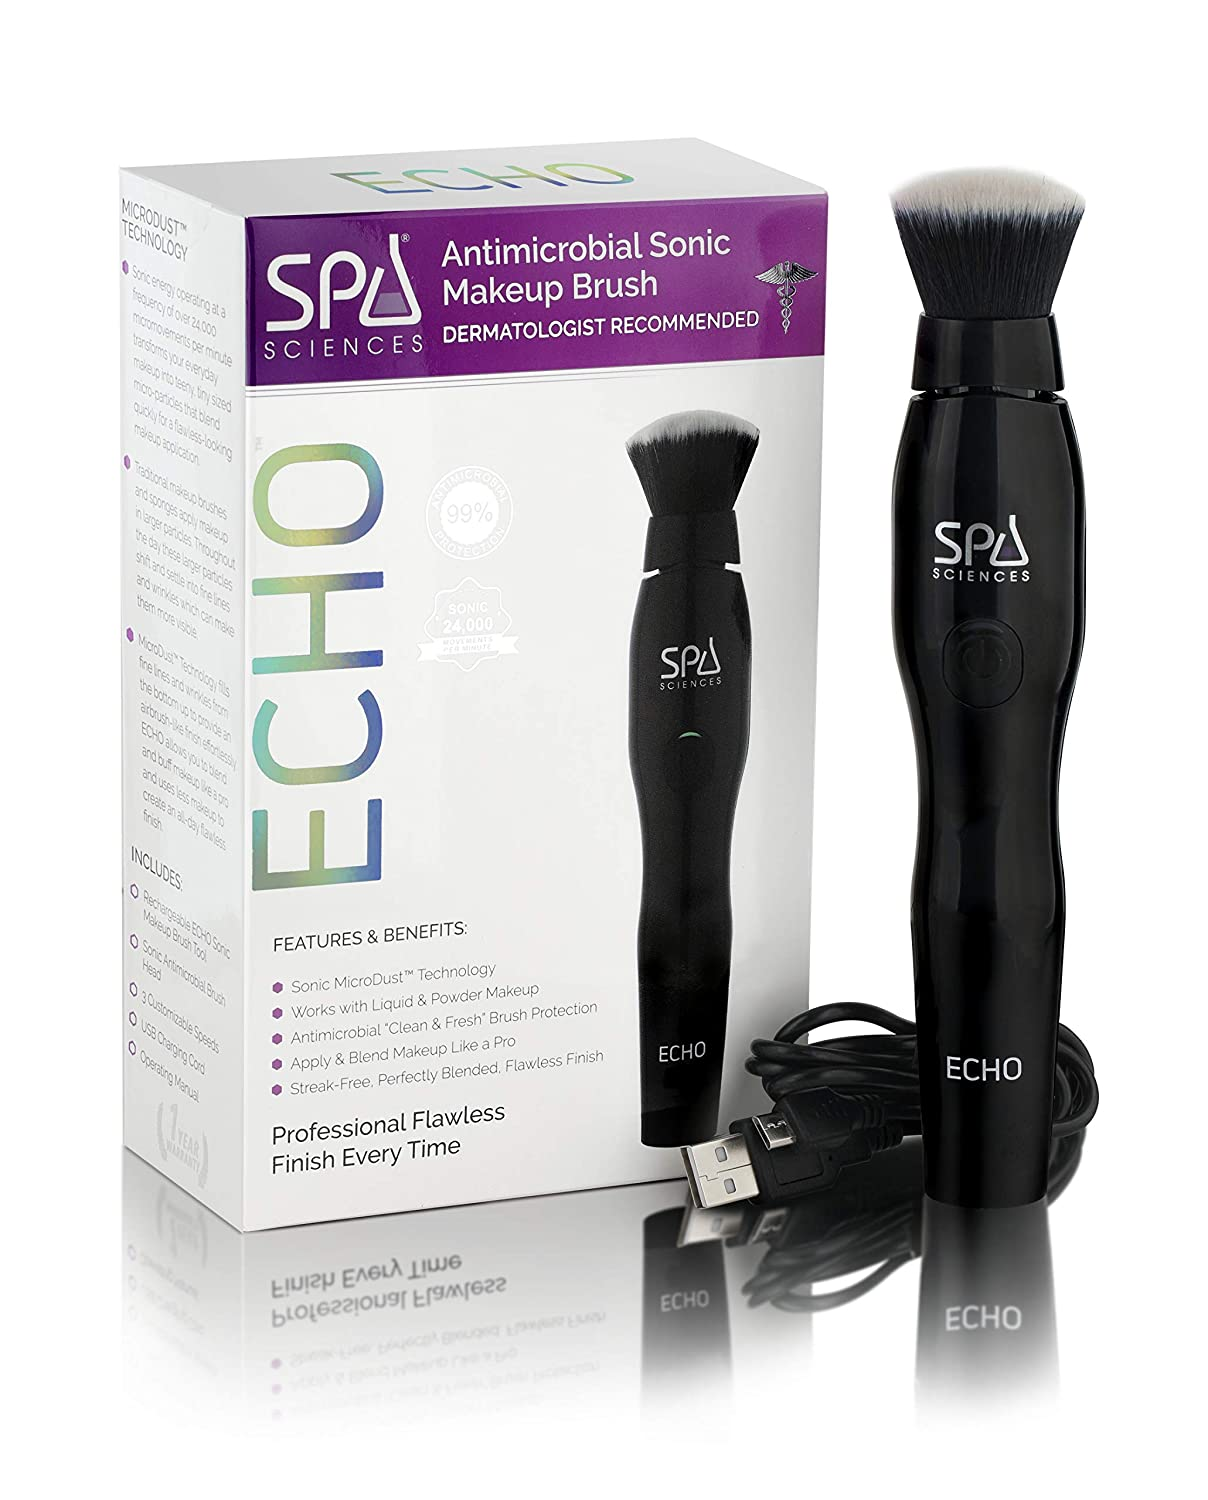 Spa Sciences ECHO Patented, Antimicrobial, Sonic Makeup Brush for Flawless Blending, Contouring, Highlight & Airbrush Finish